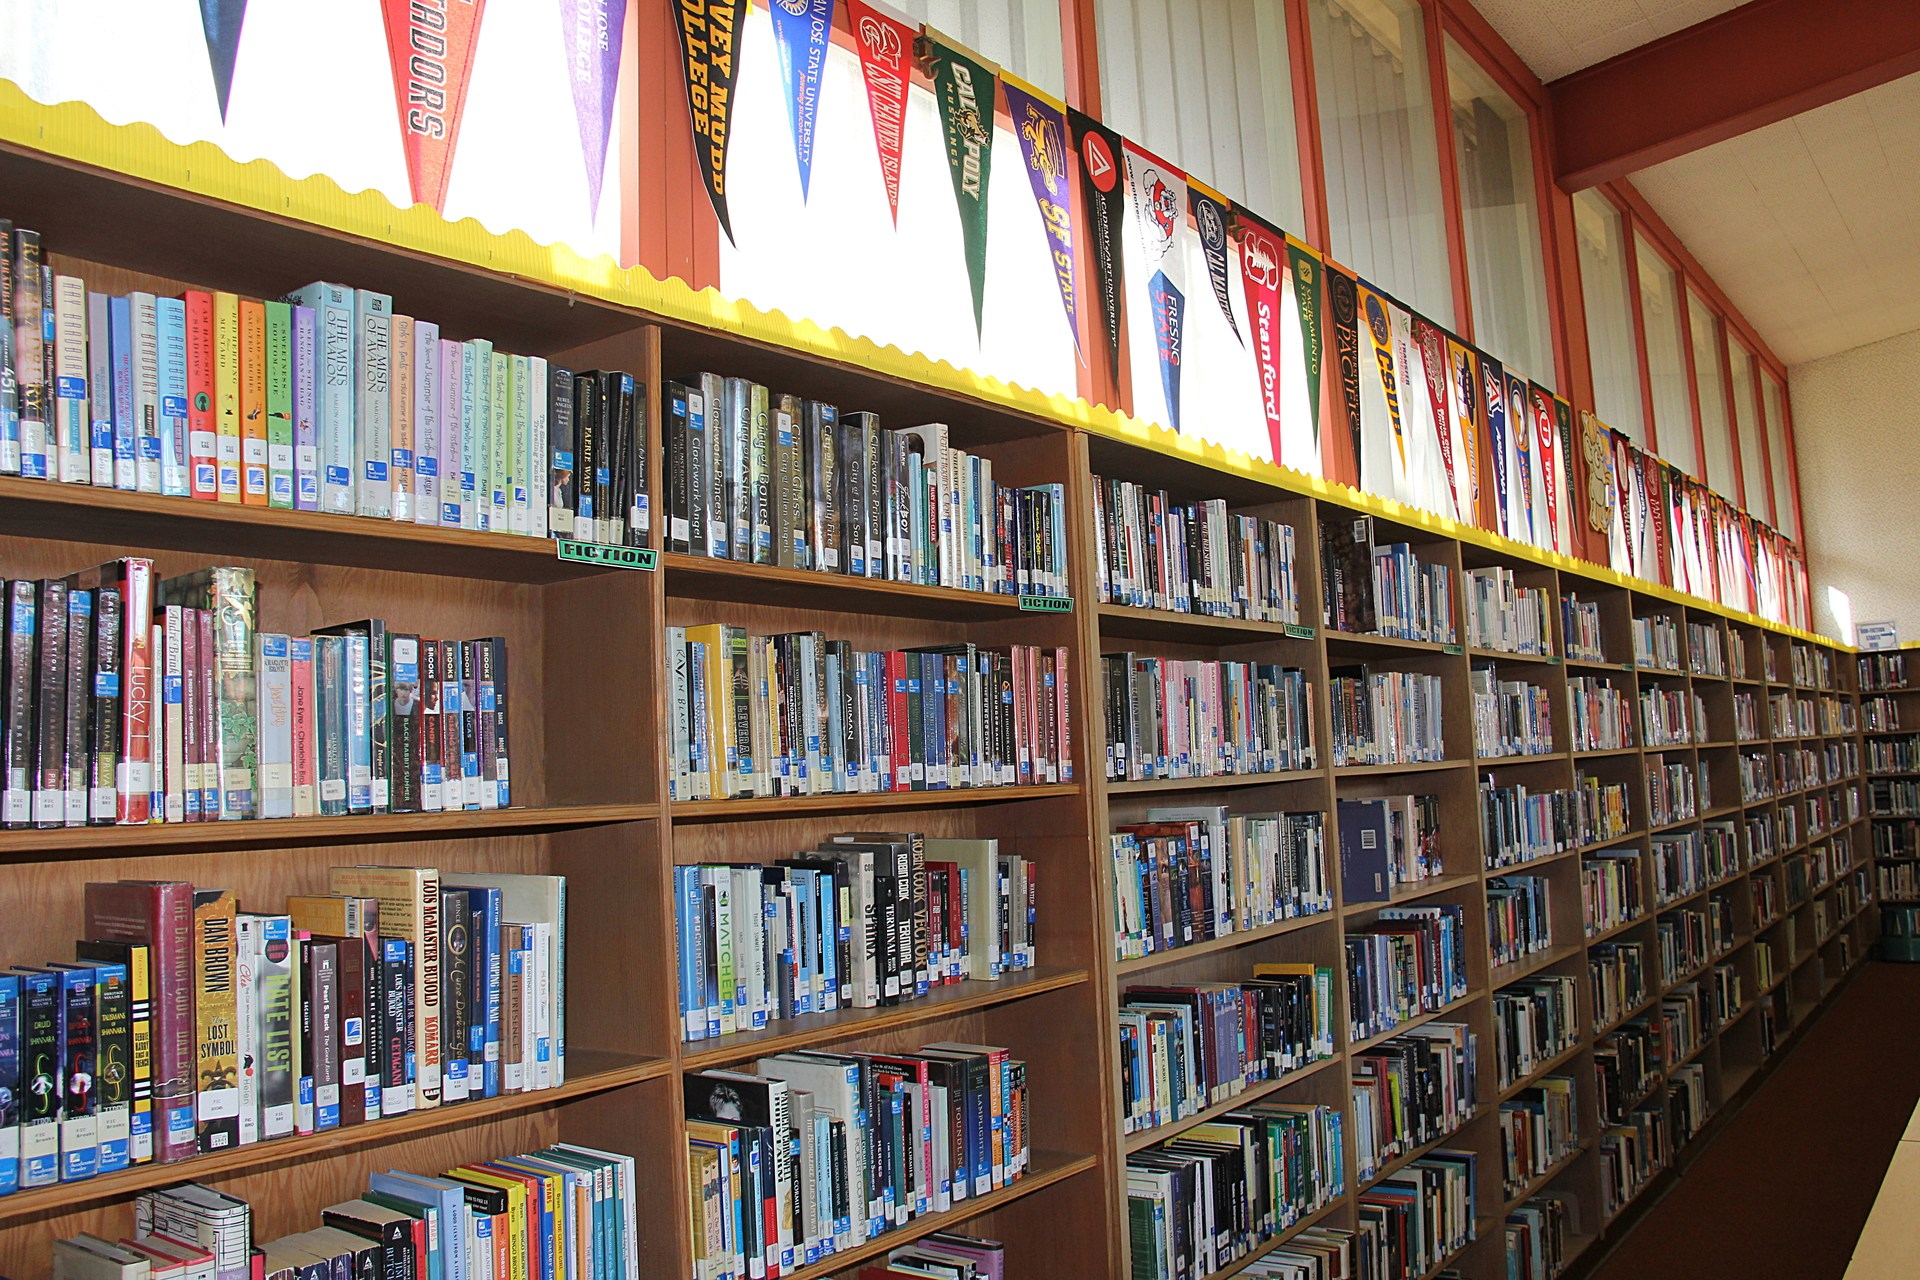 Image of books on Library shelf